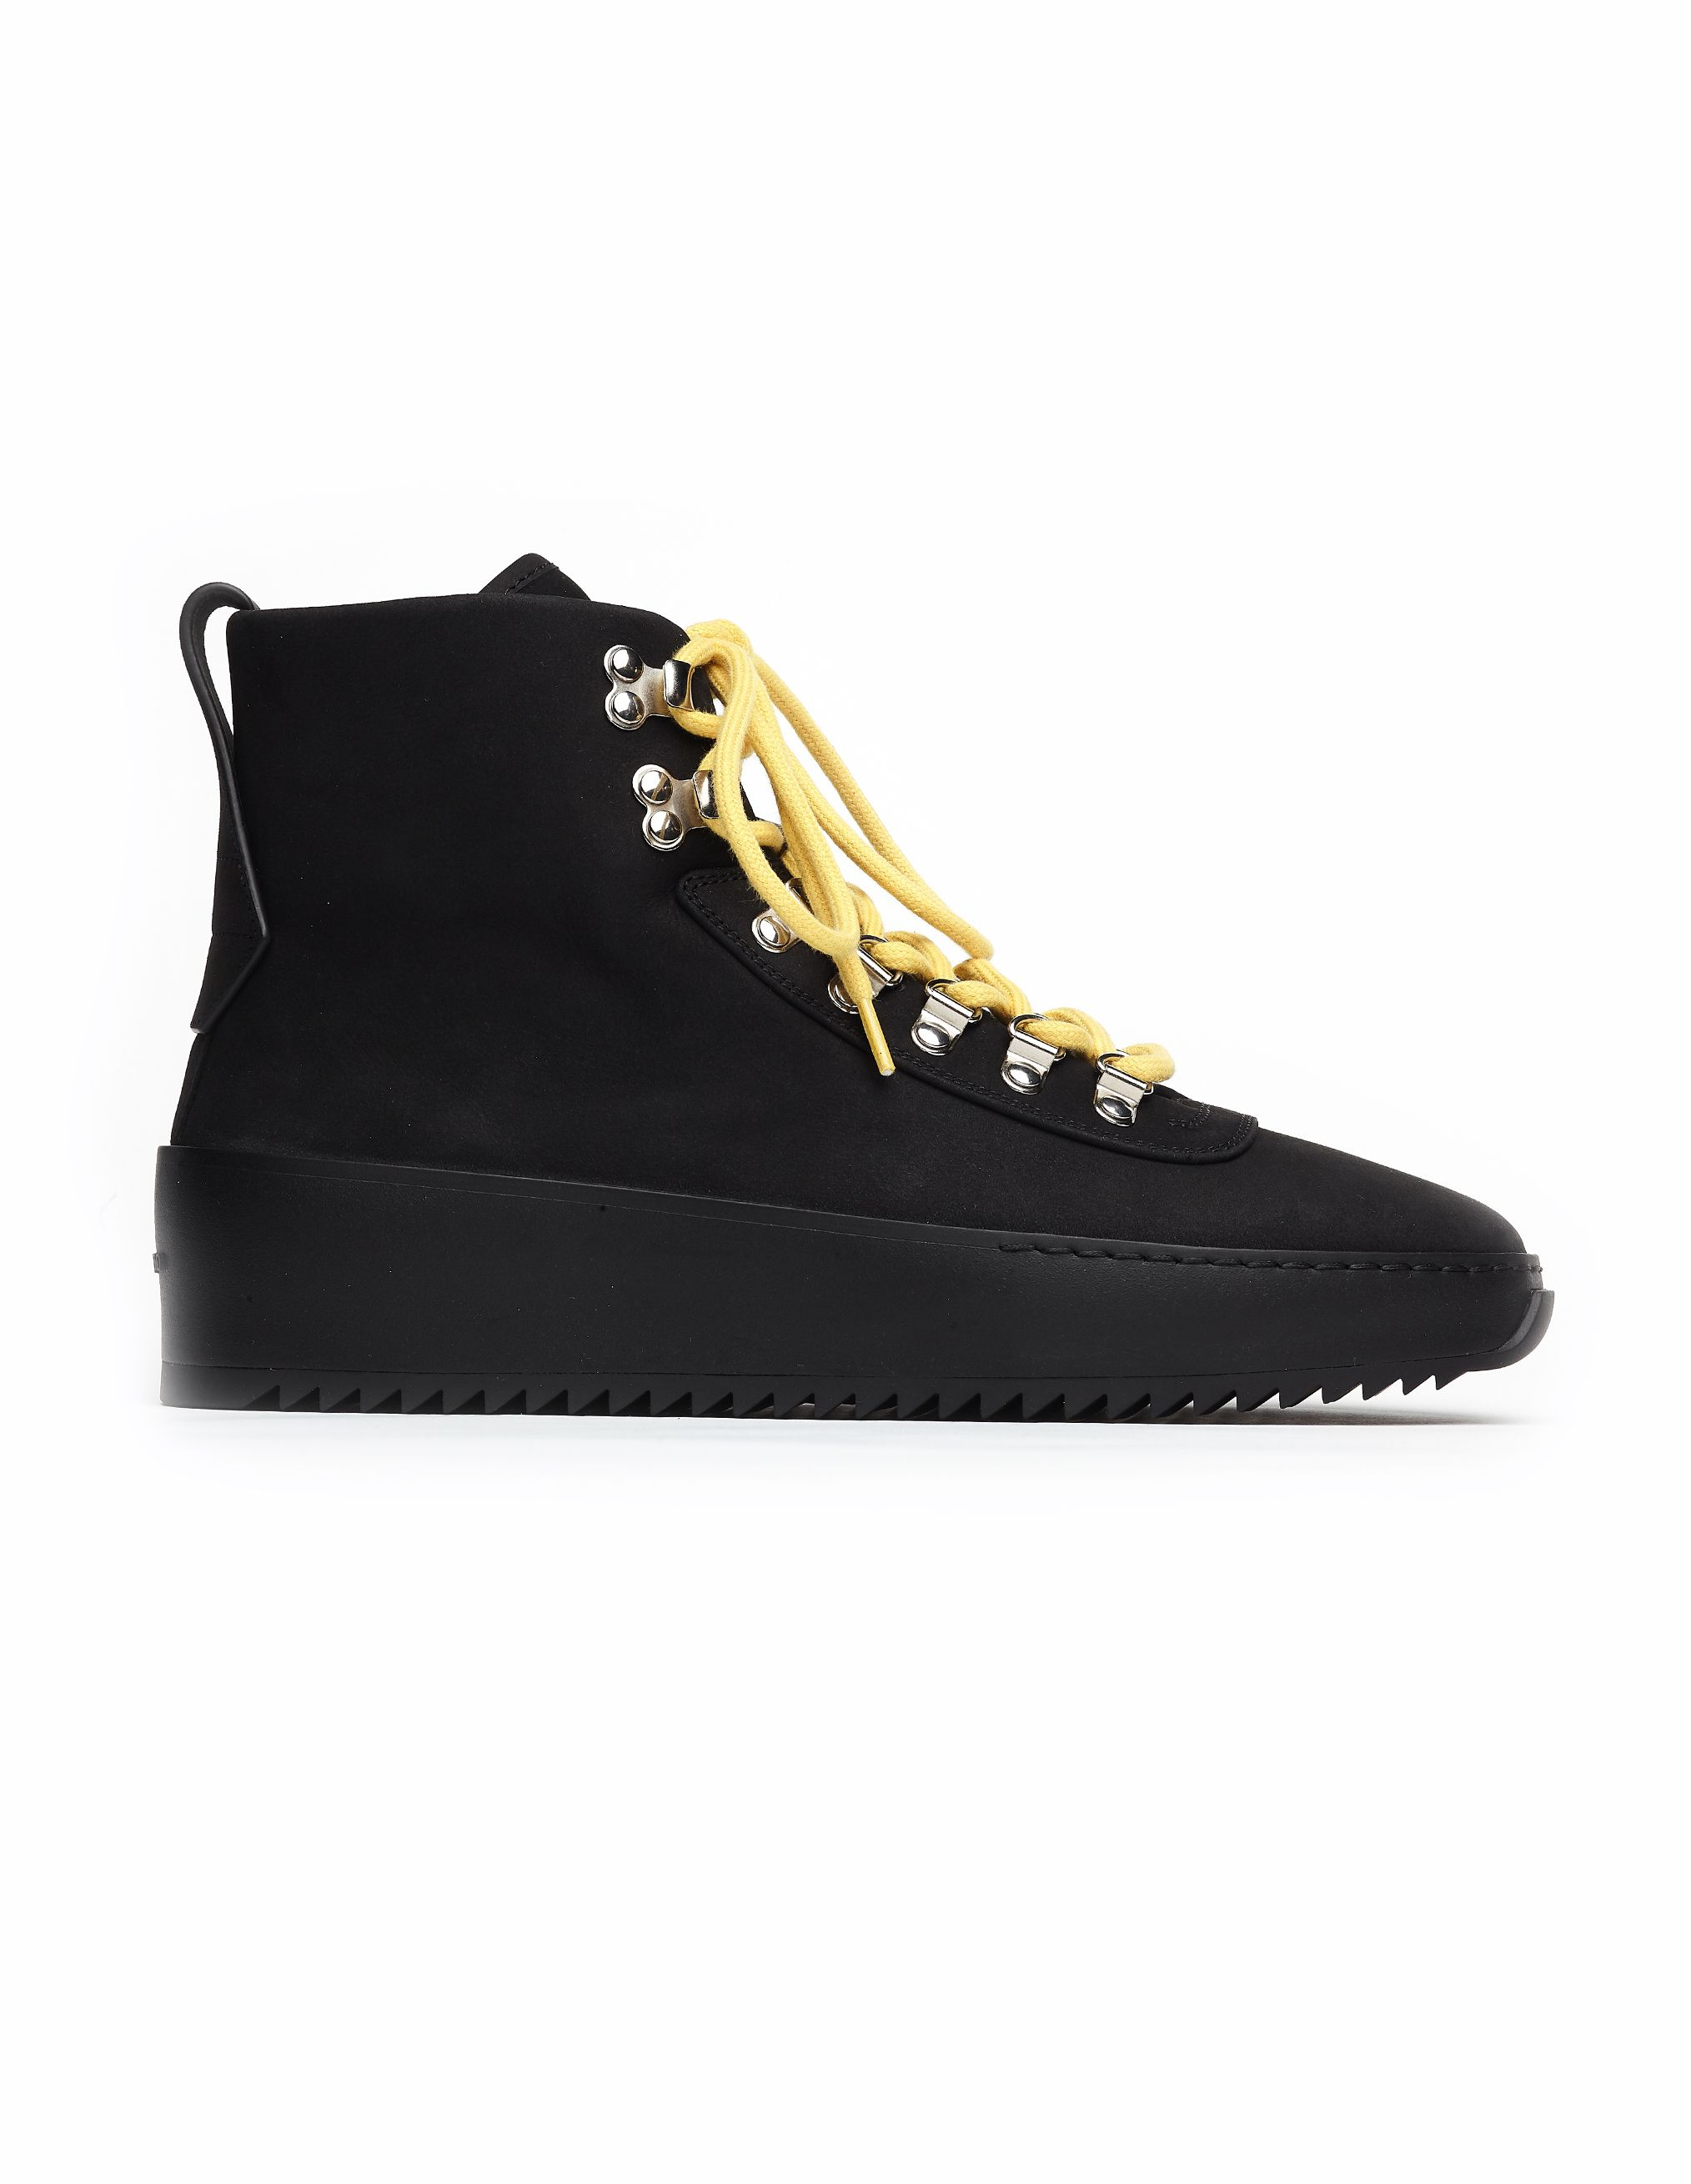 Fear of God Black Hiking Boots sYAuLEX